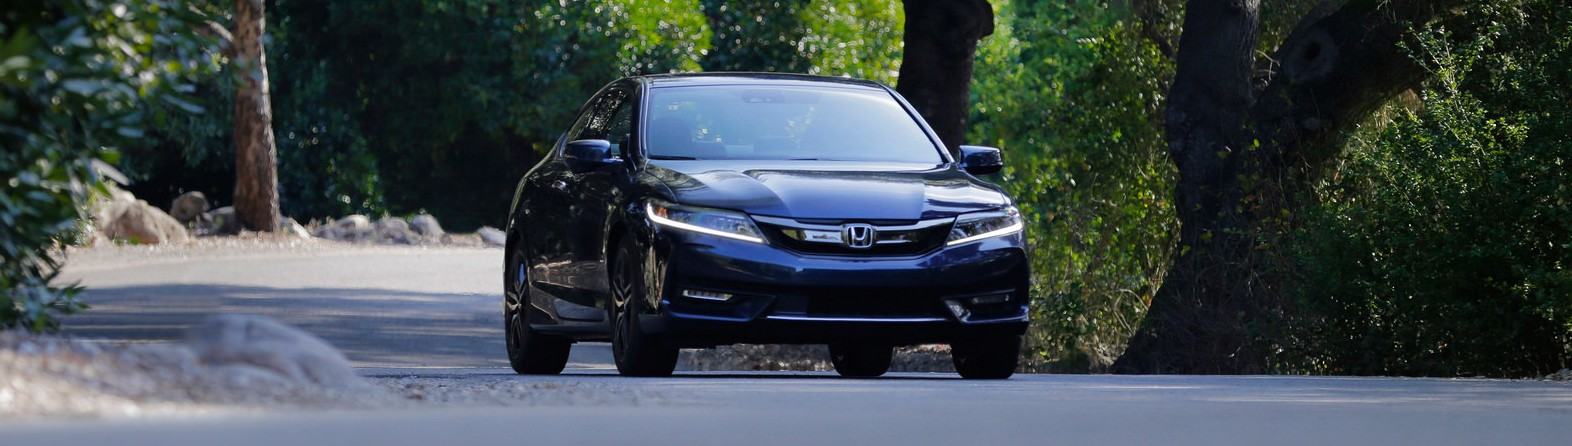 Used Honda Accord in Lubbock, TX